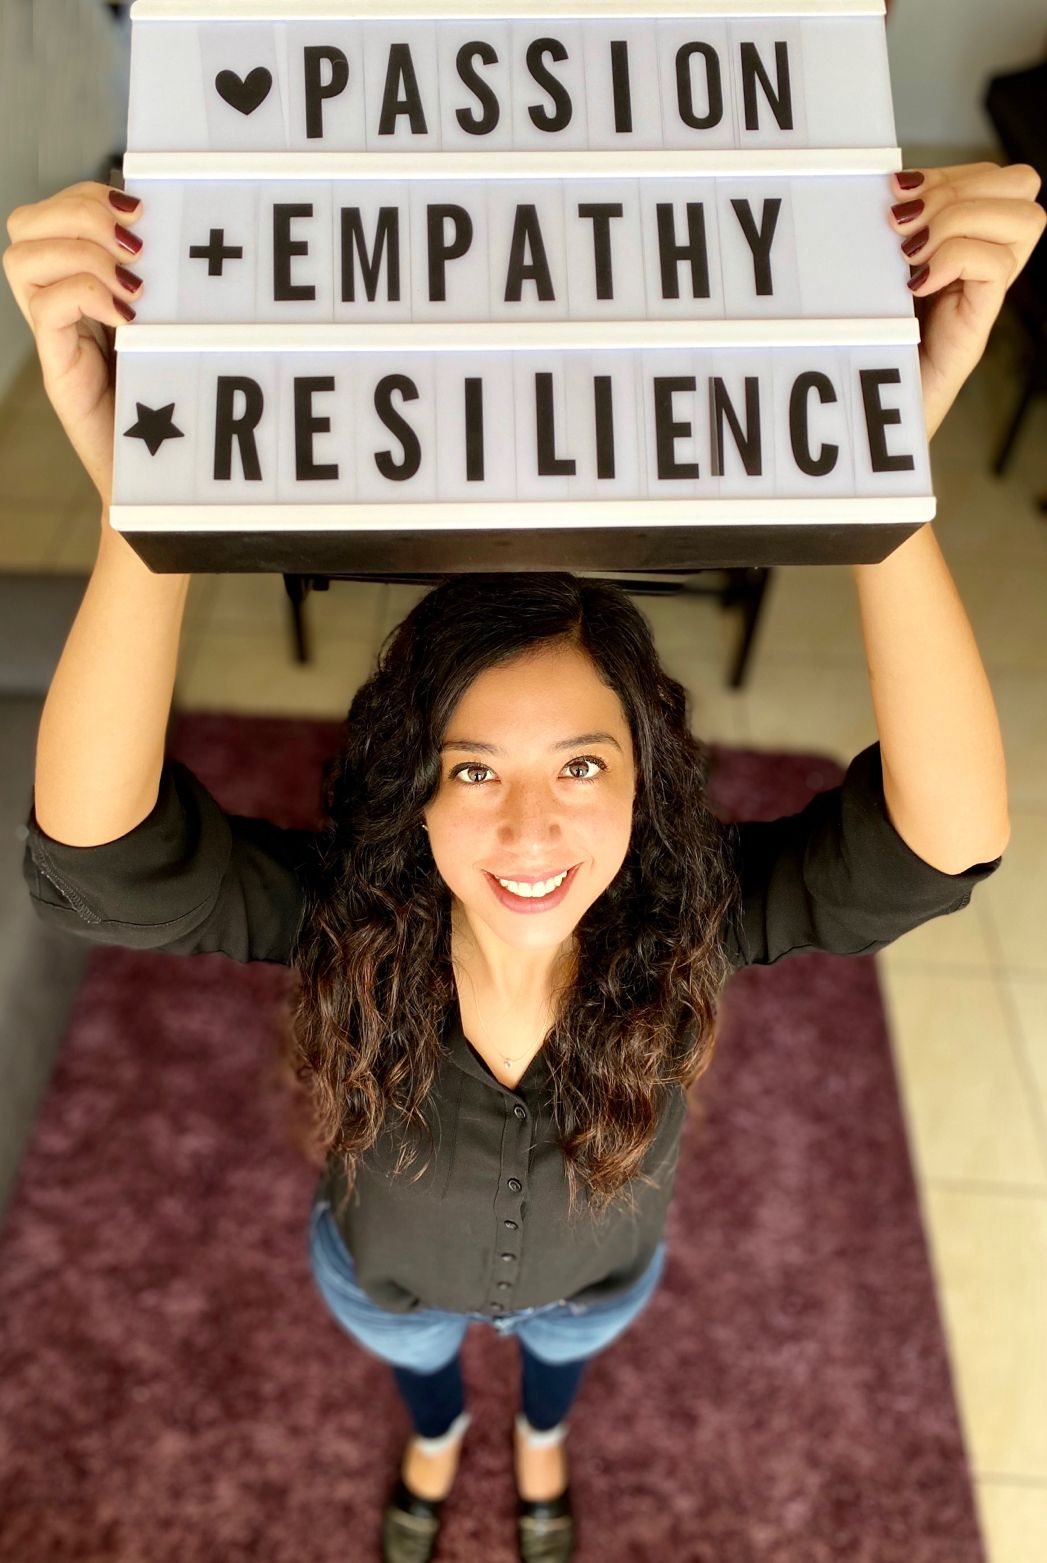 Passion, empathy, resilience